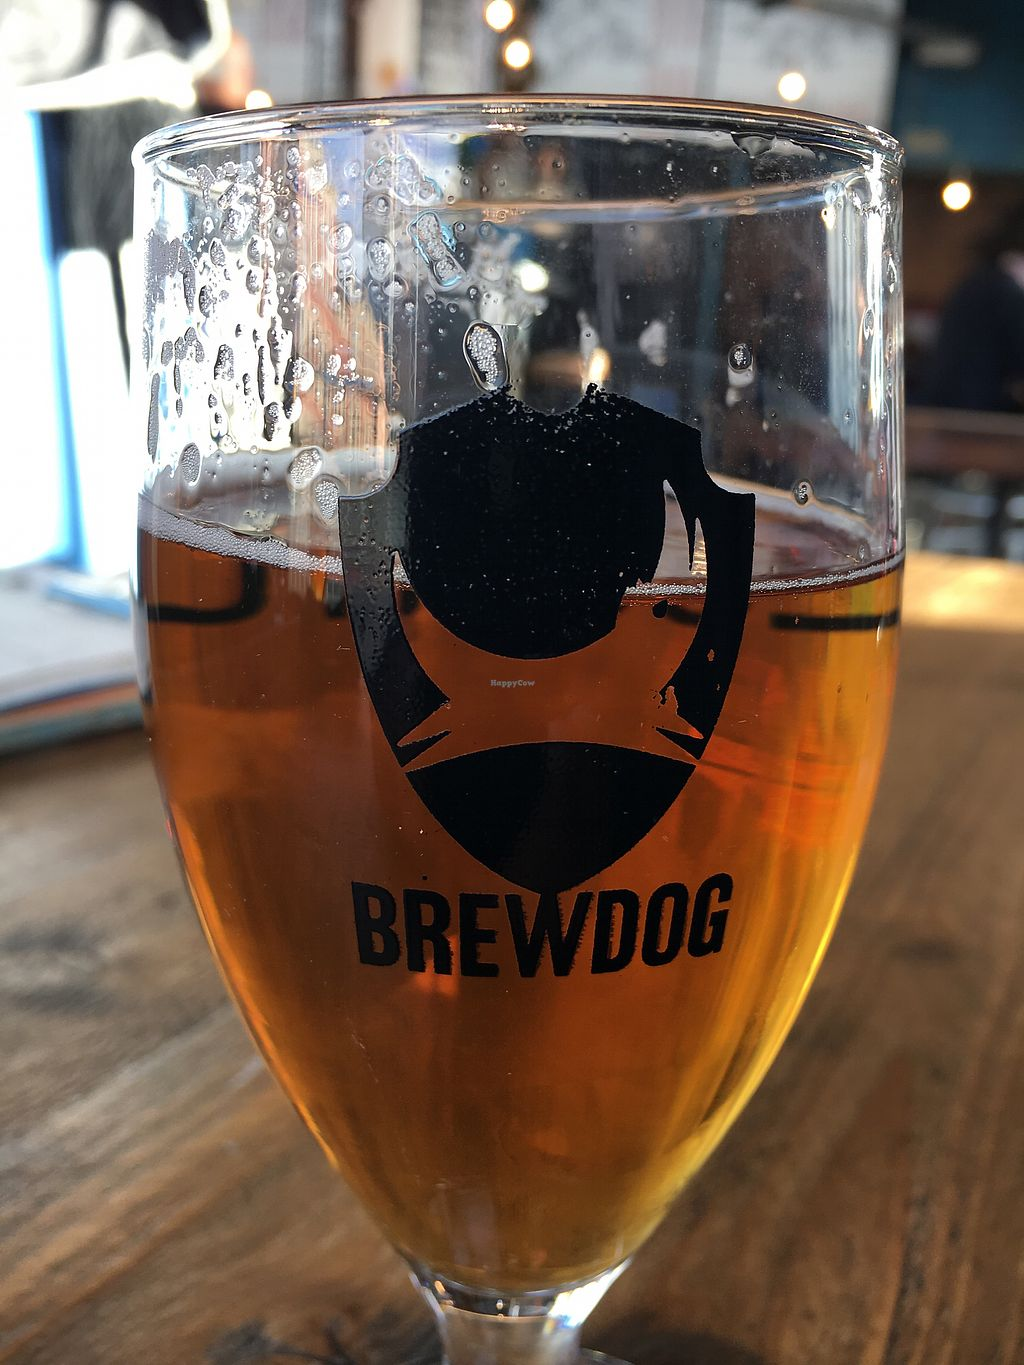 """Photo of BrewDog - Crispin House  by <a href=""""/members/profile/hack_man"""">hack_man</a> <br/>Cheers <br/> December 16, 2017  - <a href='/contact/abuse/image/107130/336132'>Report</a>"""